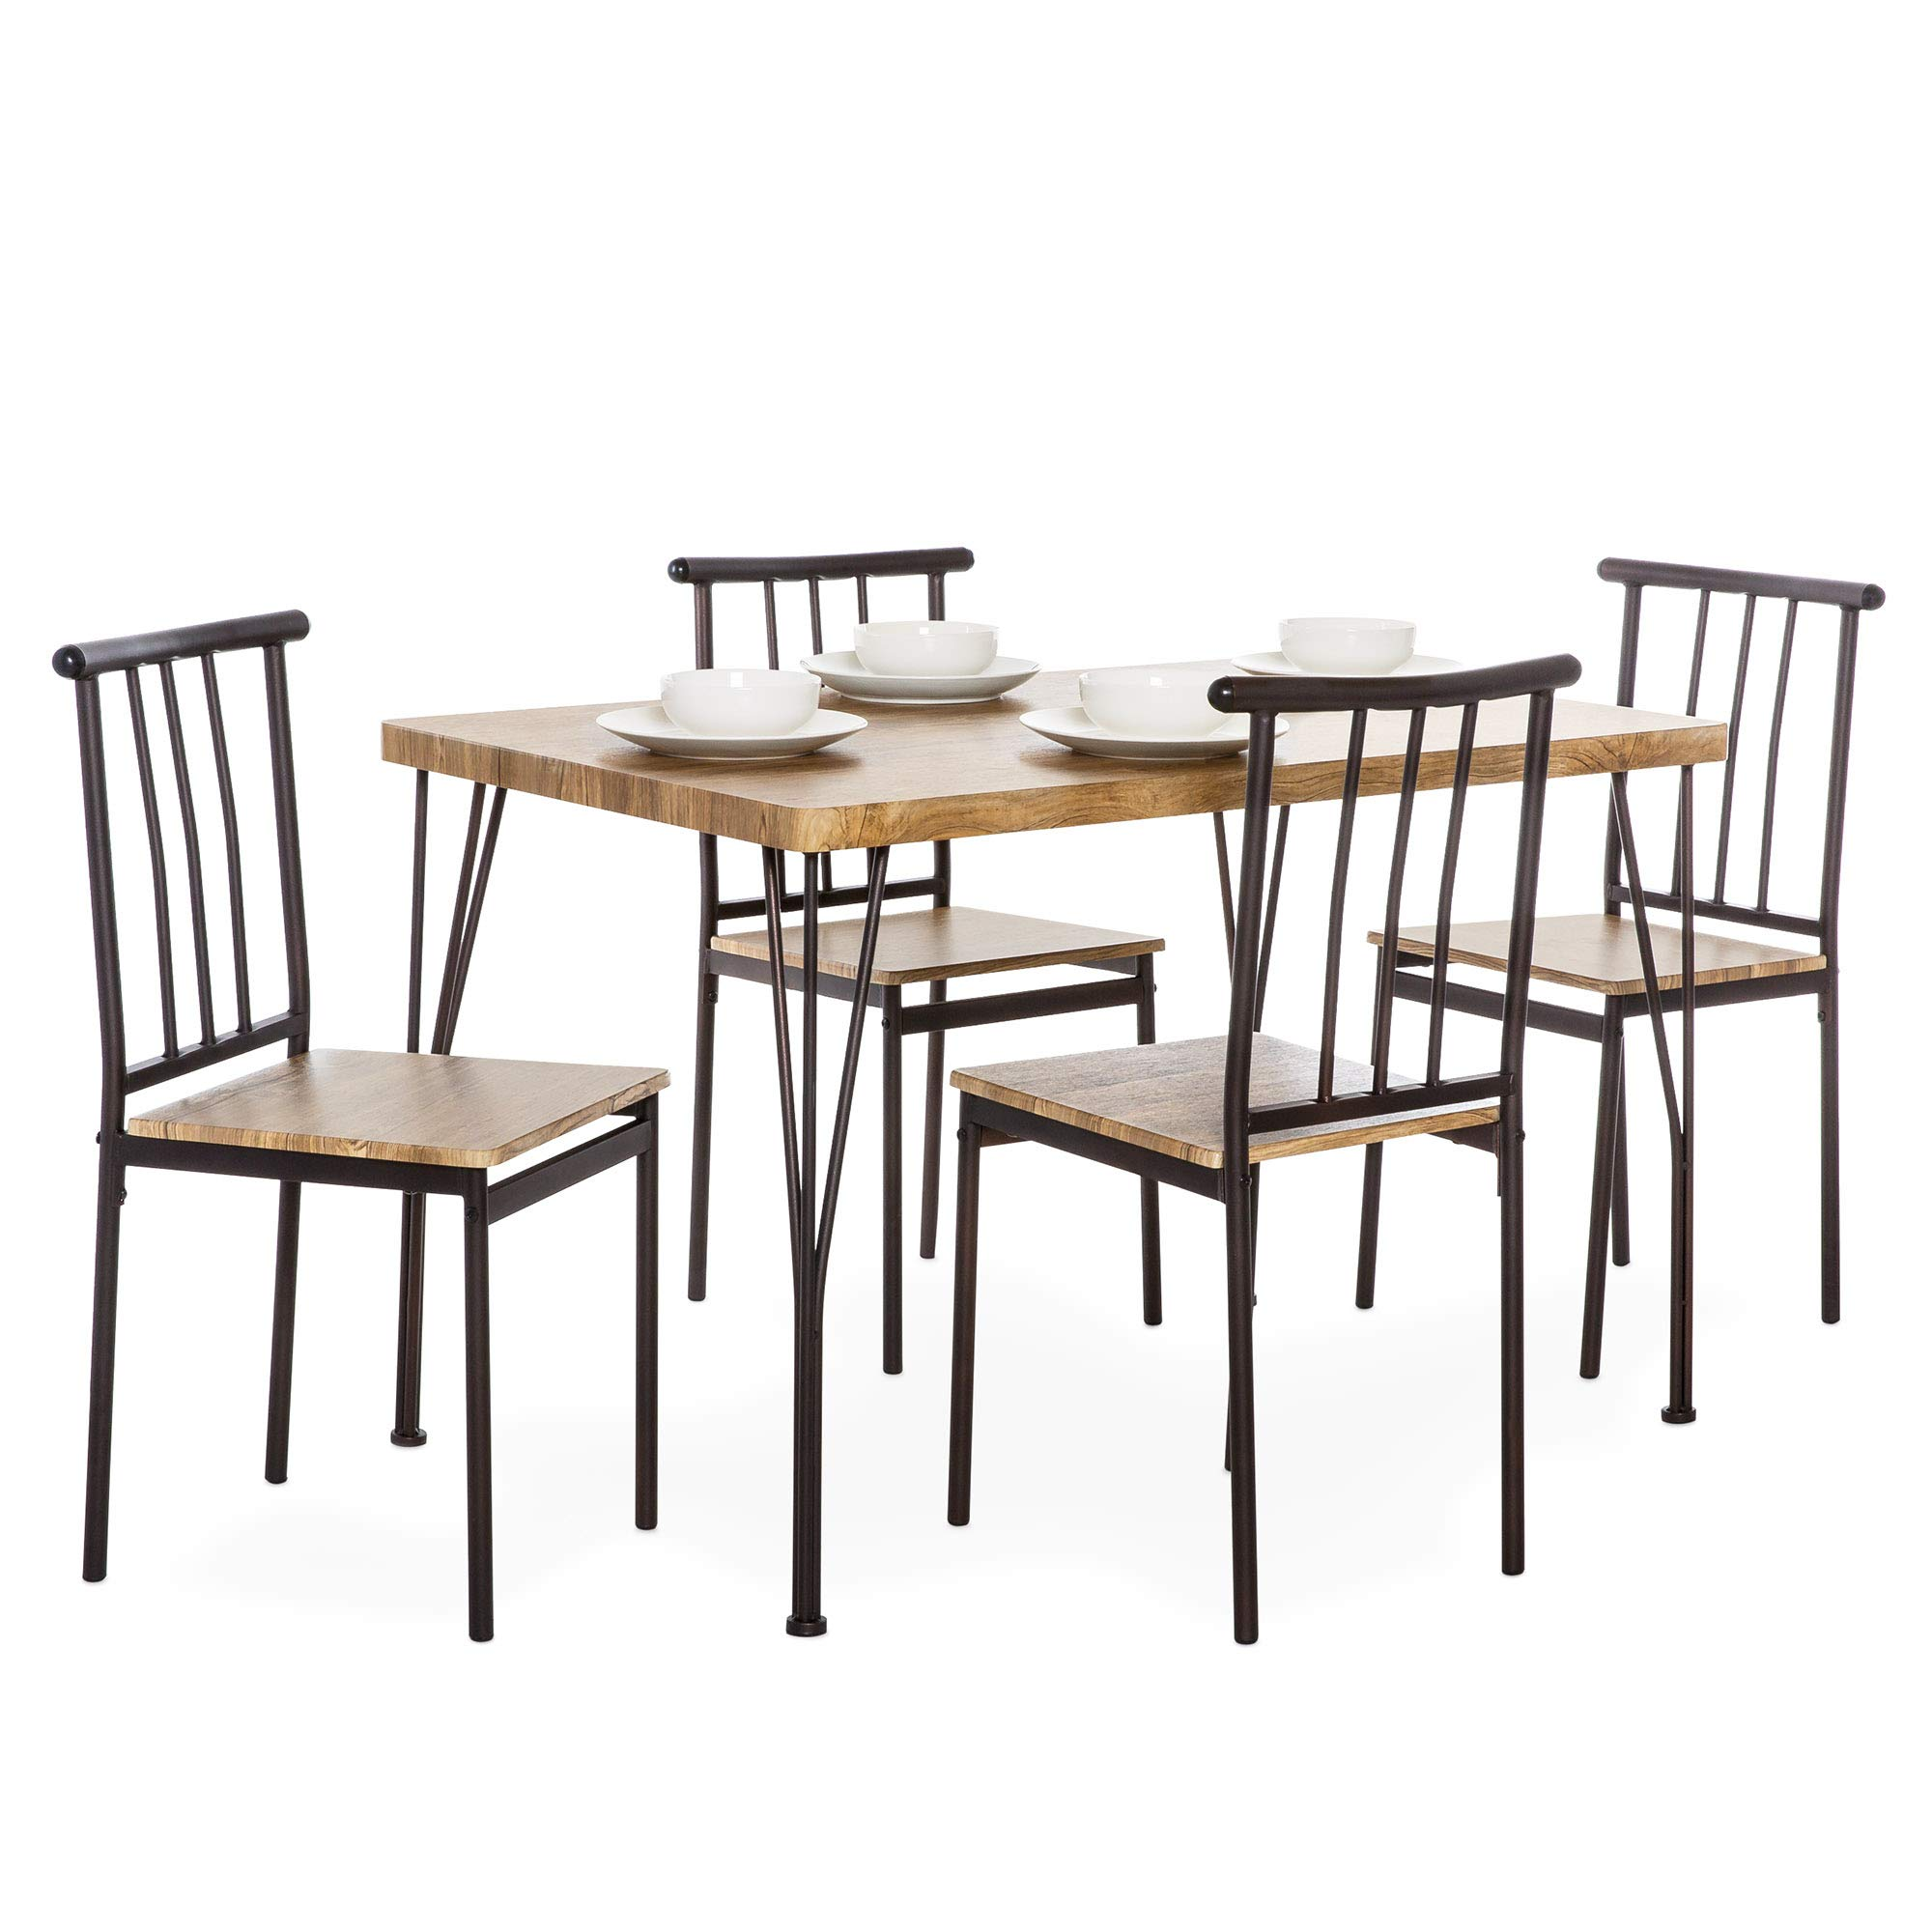 Best Choice Products 5-Piece Indoor Modern Metal and Wood Rectangular Dining Table Furniture Set for Kitchen, Dining Room, Dinette, Breakfast Nook w/ 4 Chairs - Brown